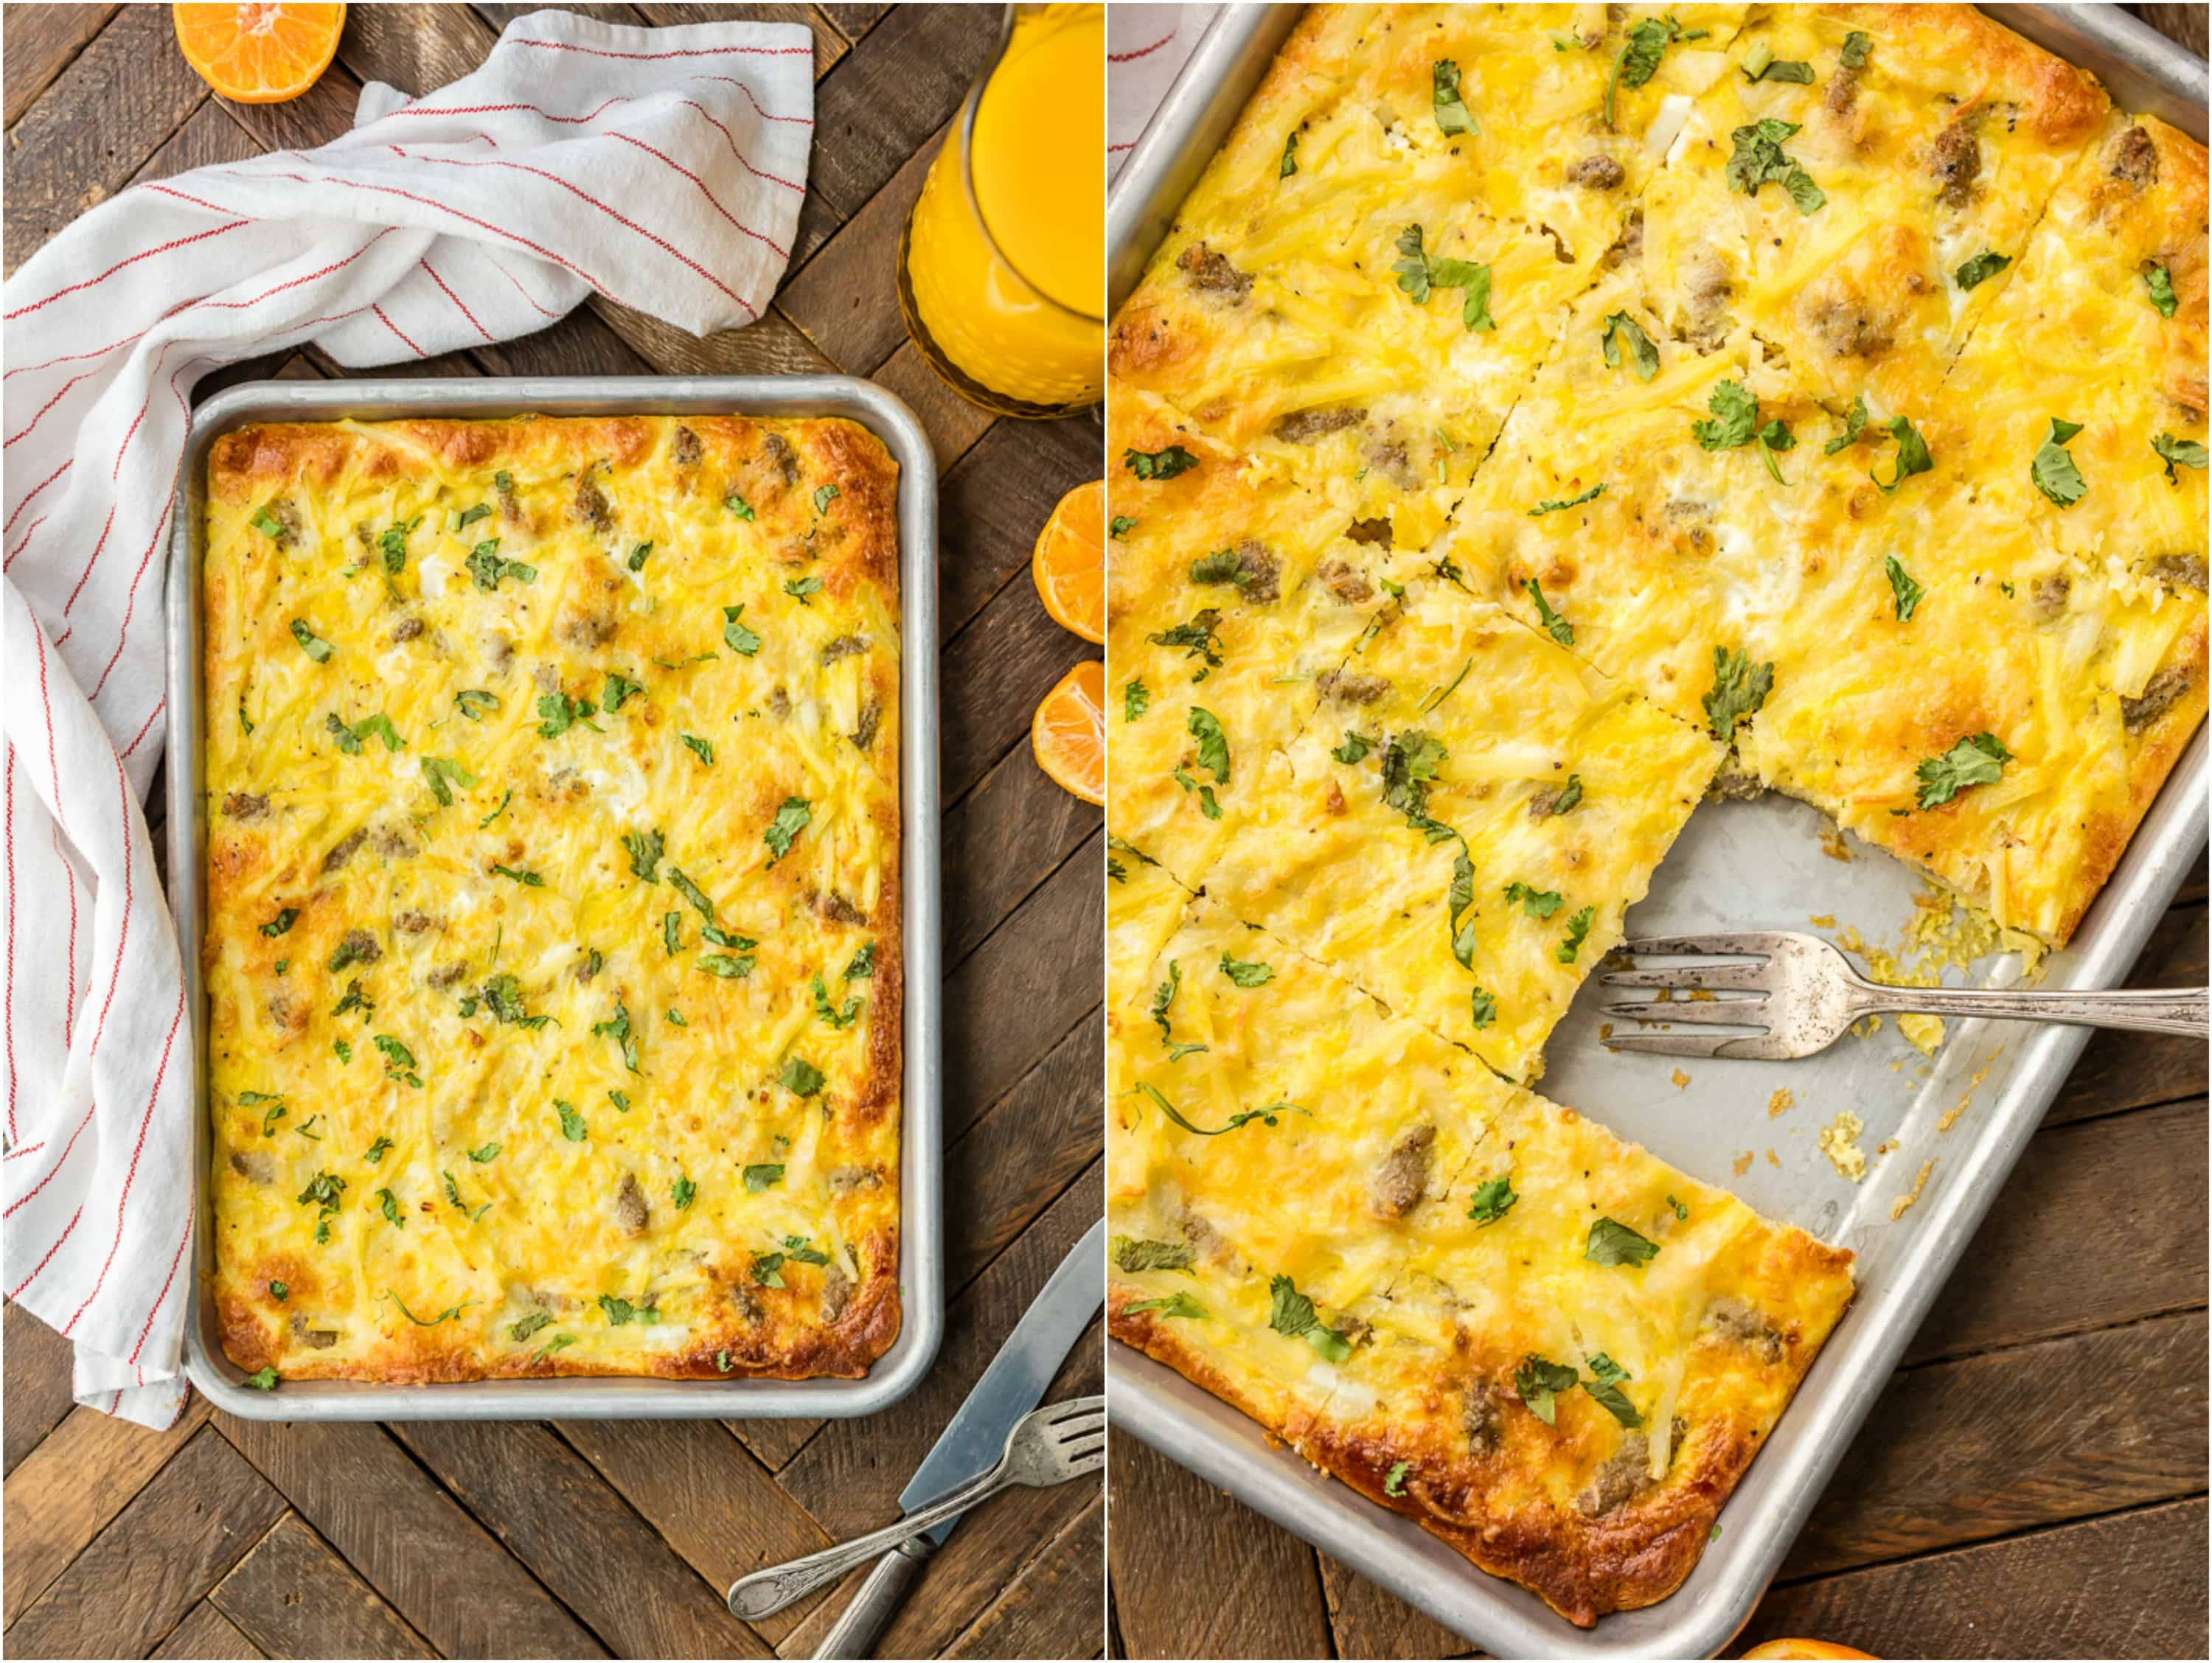 EASY SHEET PAN BREAKFAST PIZZA! Our favorite easy breakfast recipe for Christmas morning and any day throughout the year. Cooked on a baking sheet! Loaded with sausage, cheese, potatoes, and eggs. Best easy breakfast recipe!